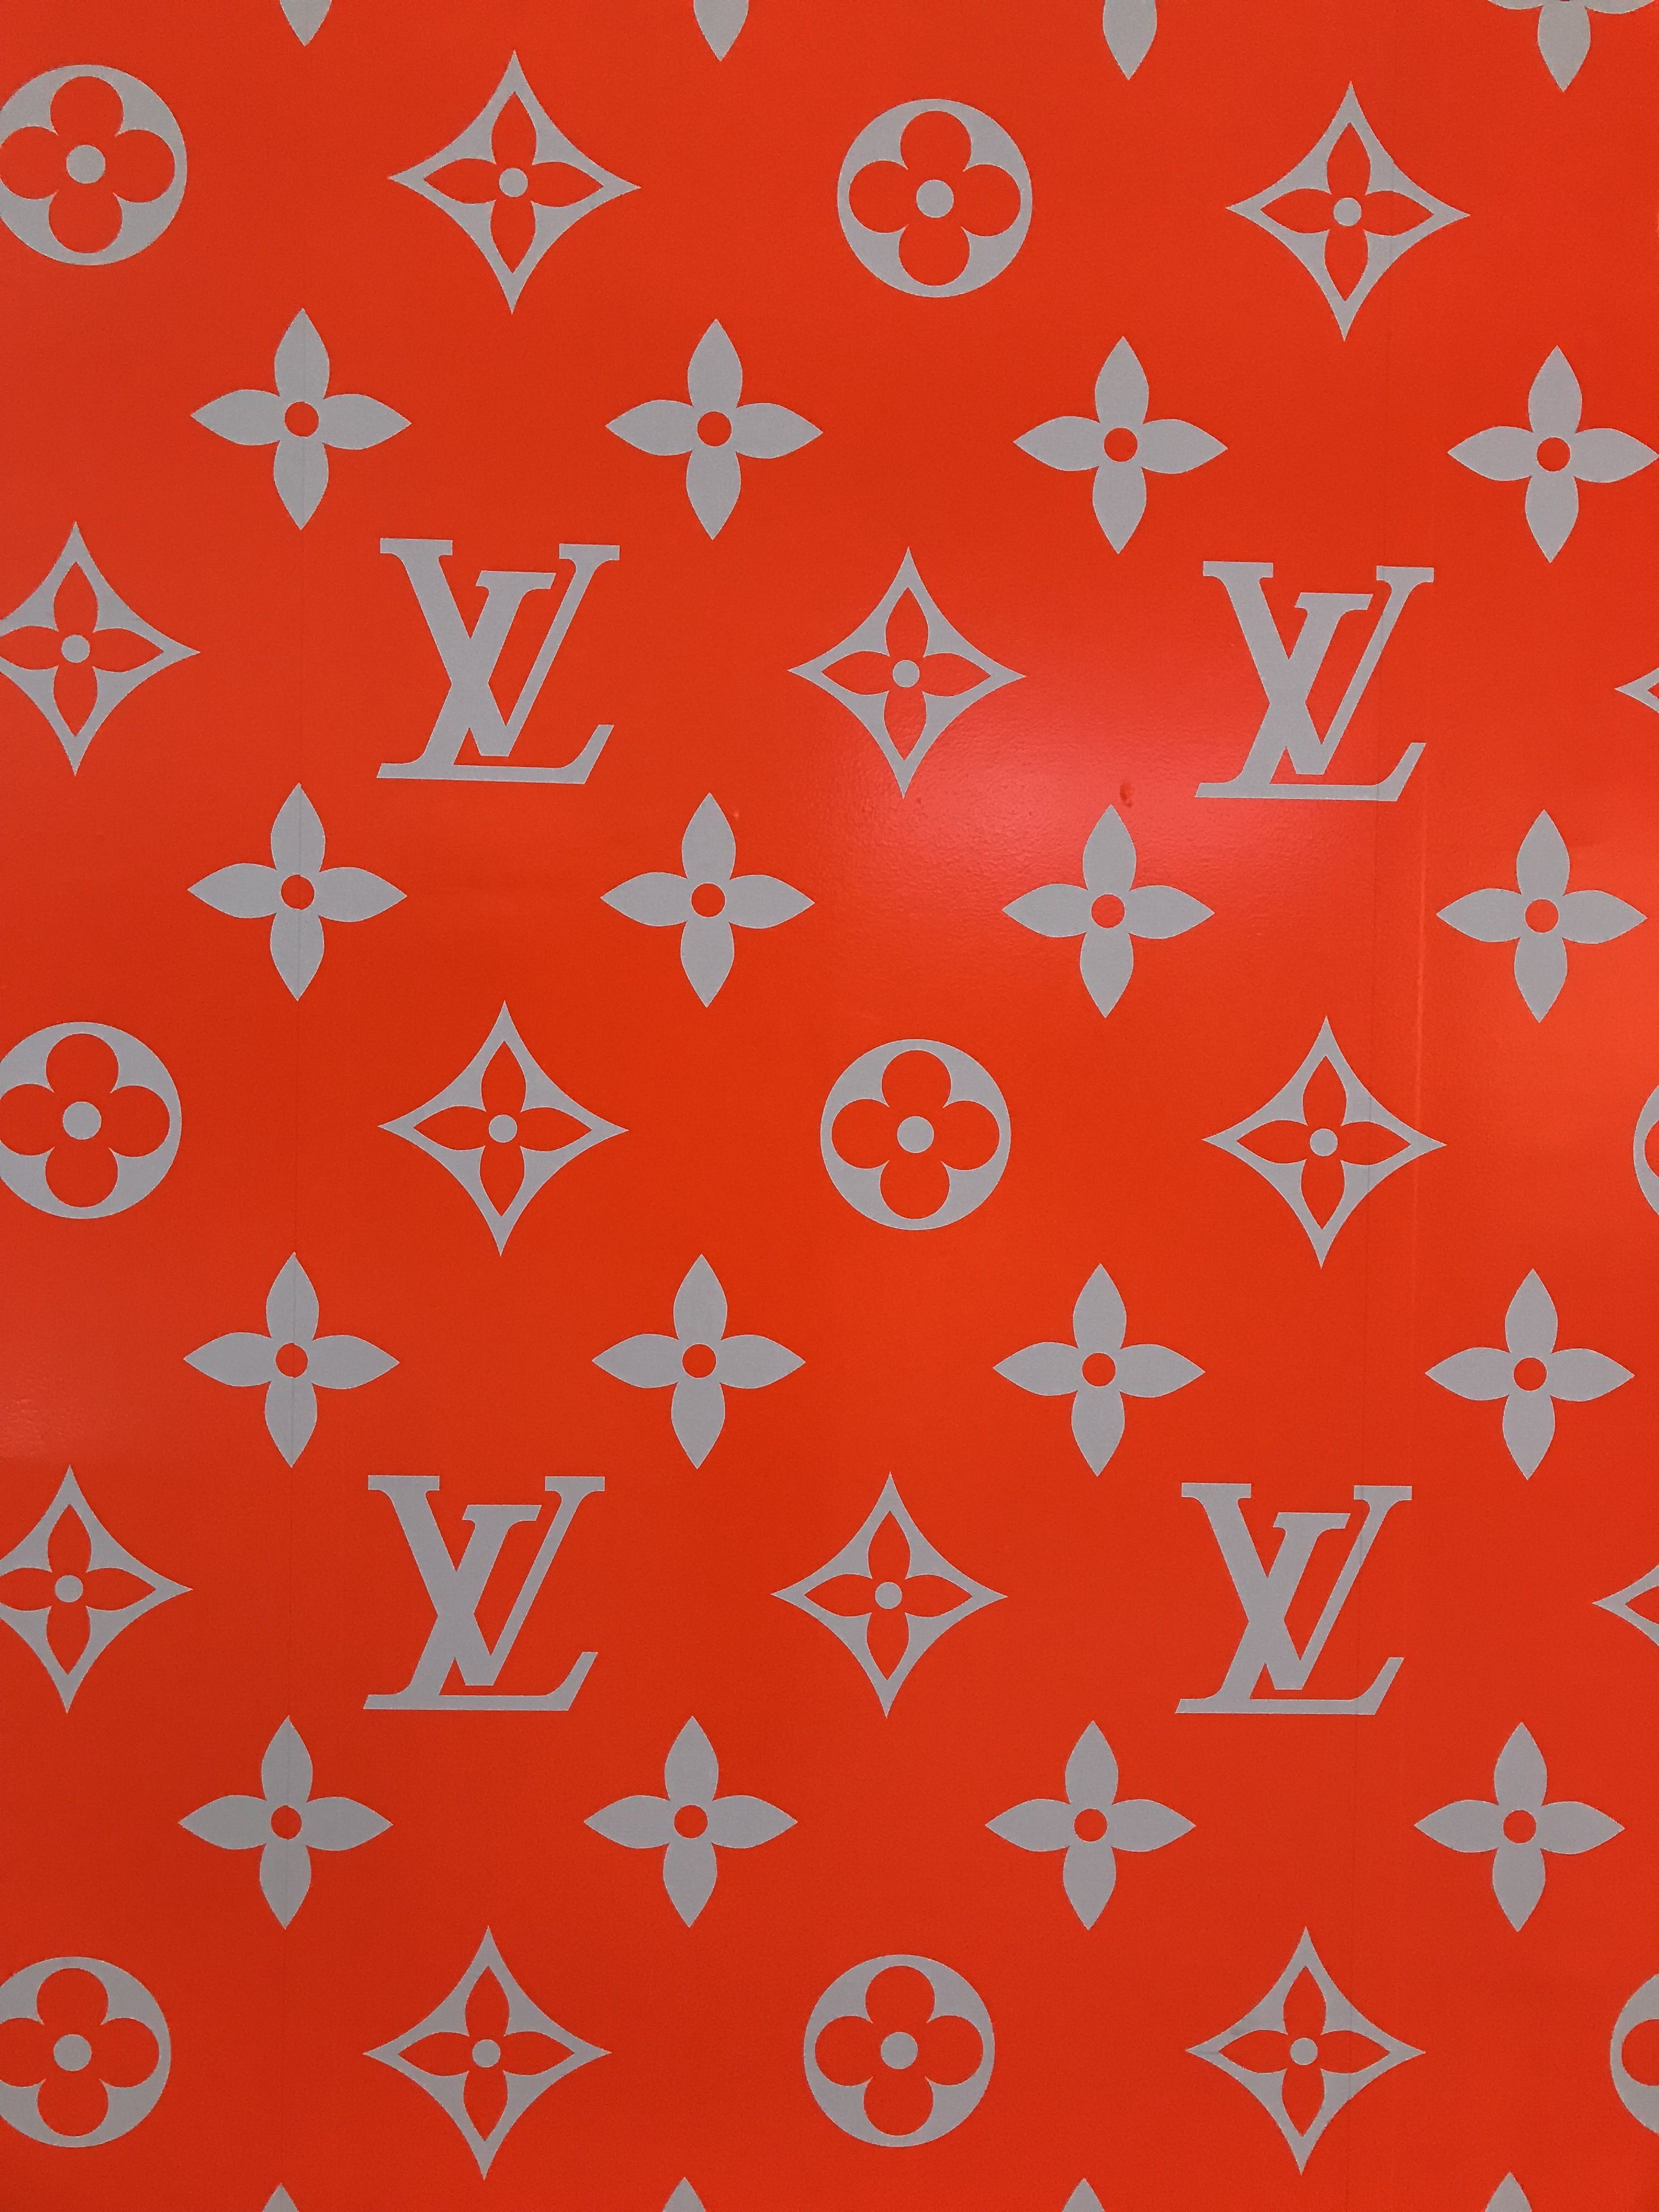 Louis Vuitton in store wallpaper Wallpaper backgrounds